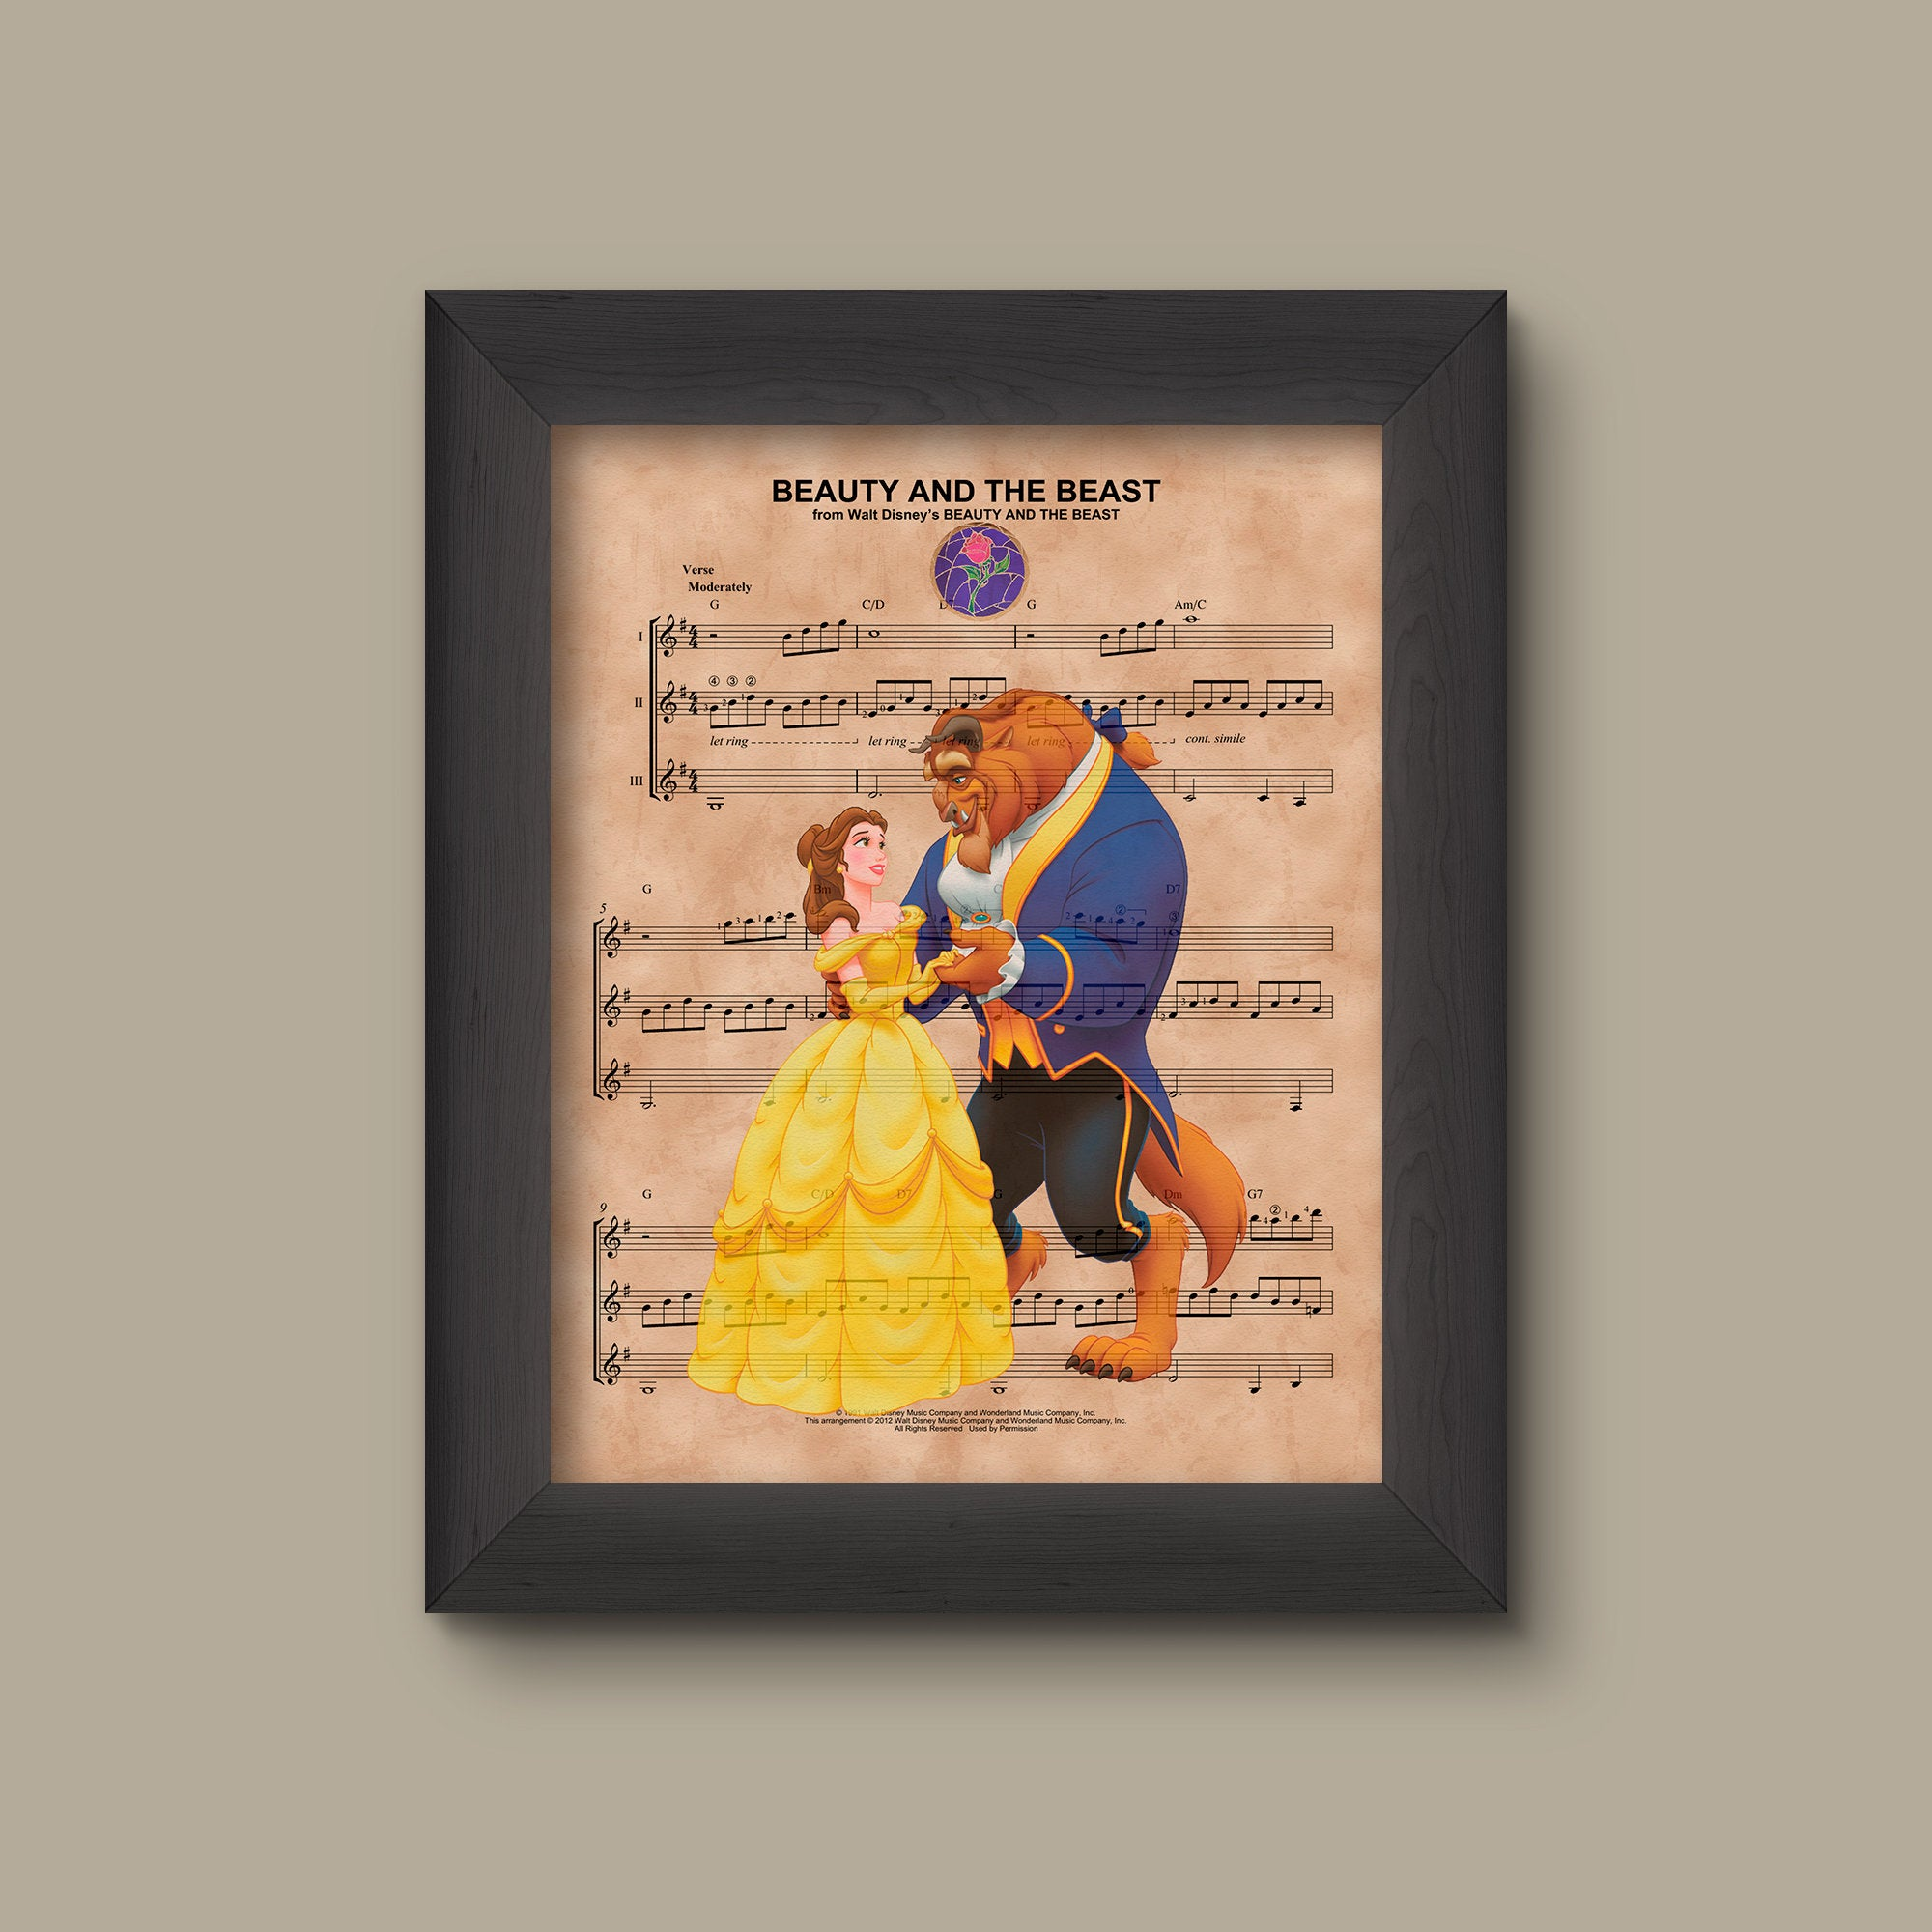 Beauty And The Beast Sheet Music Print Prints Charming Art Llc